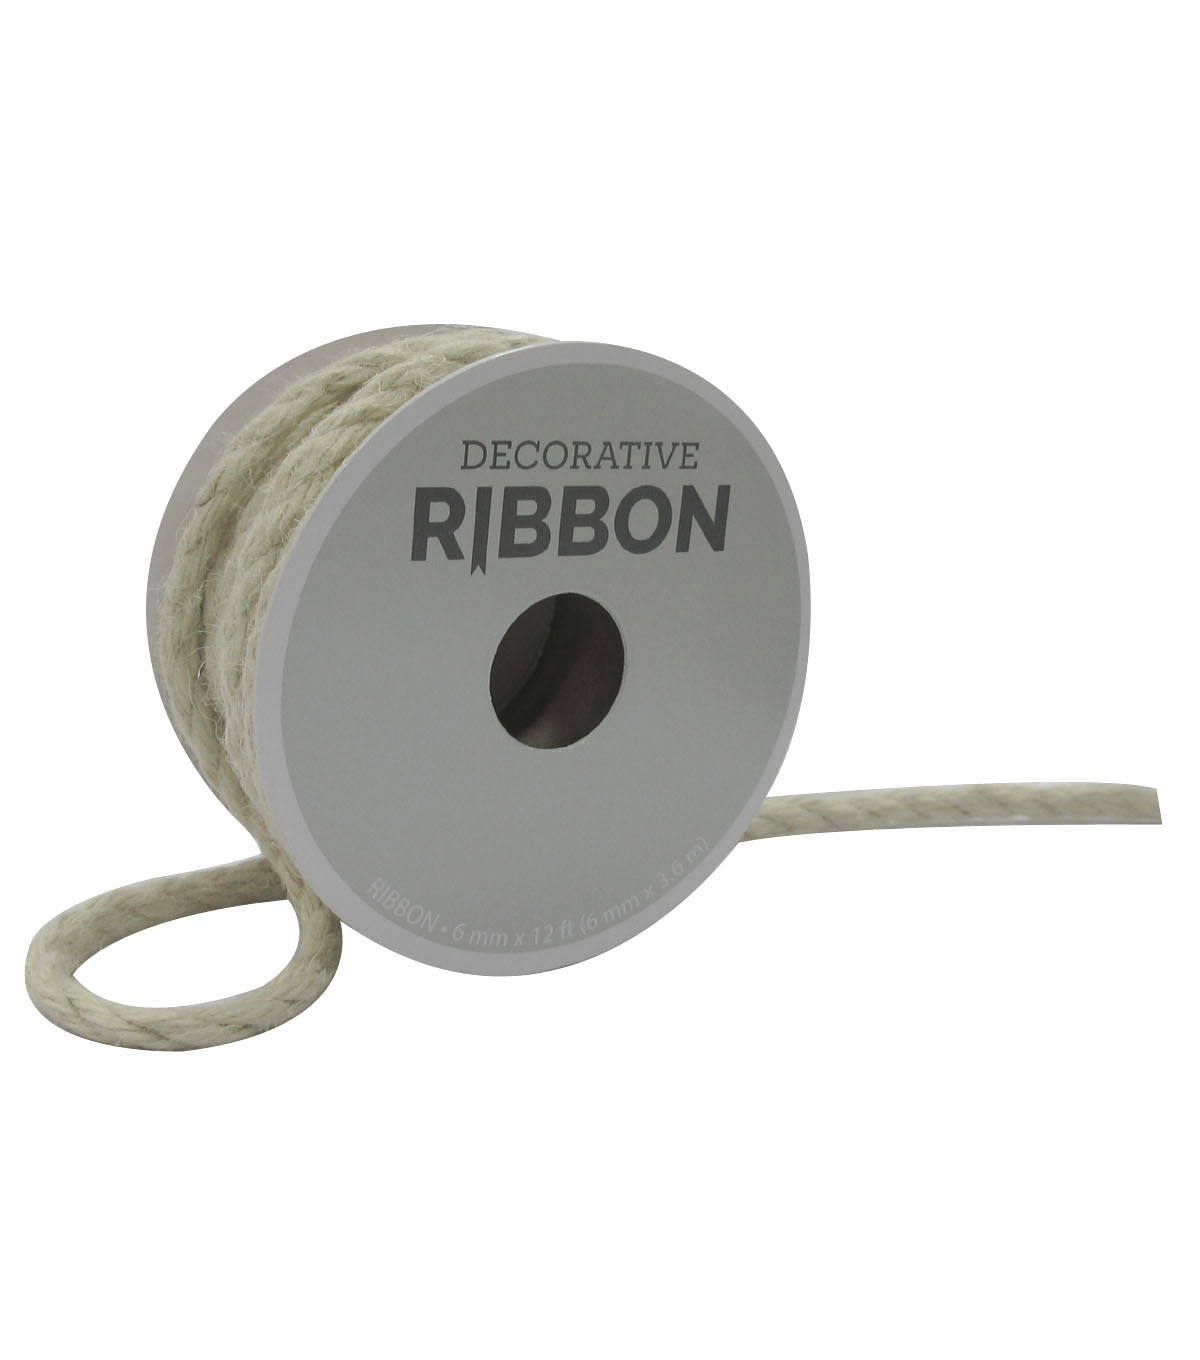 Decorative Ribbon 6mmx12\u0027 Narrow Cord-Ivory